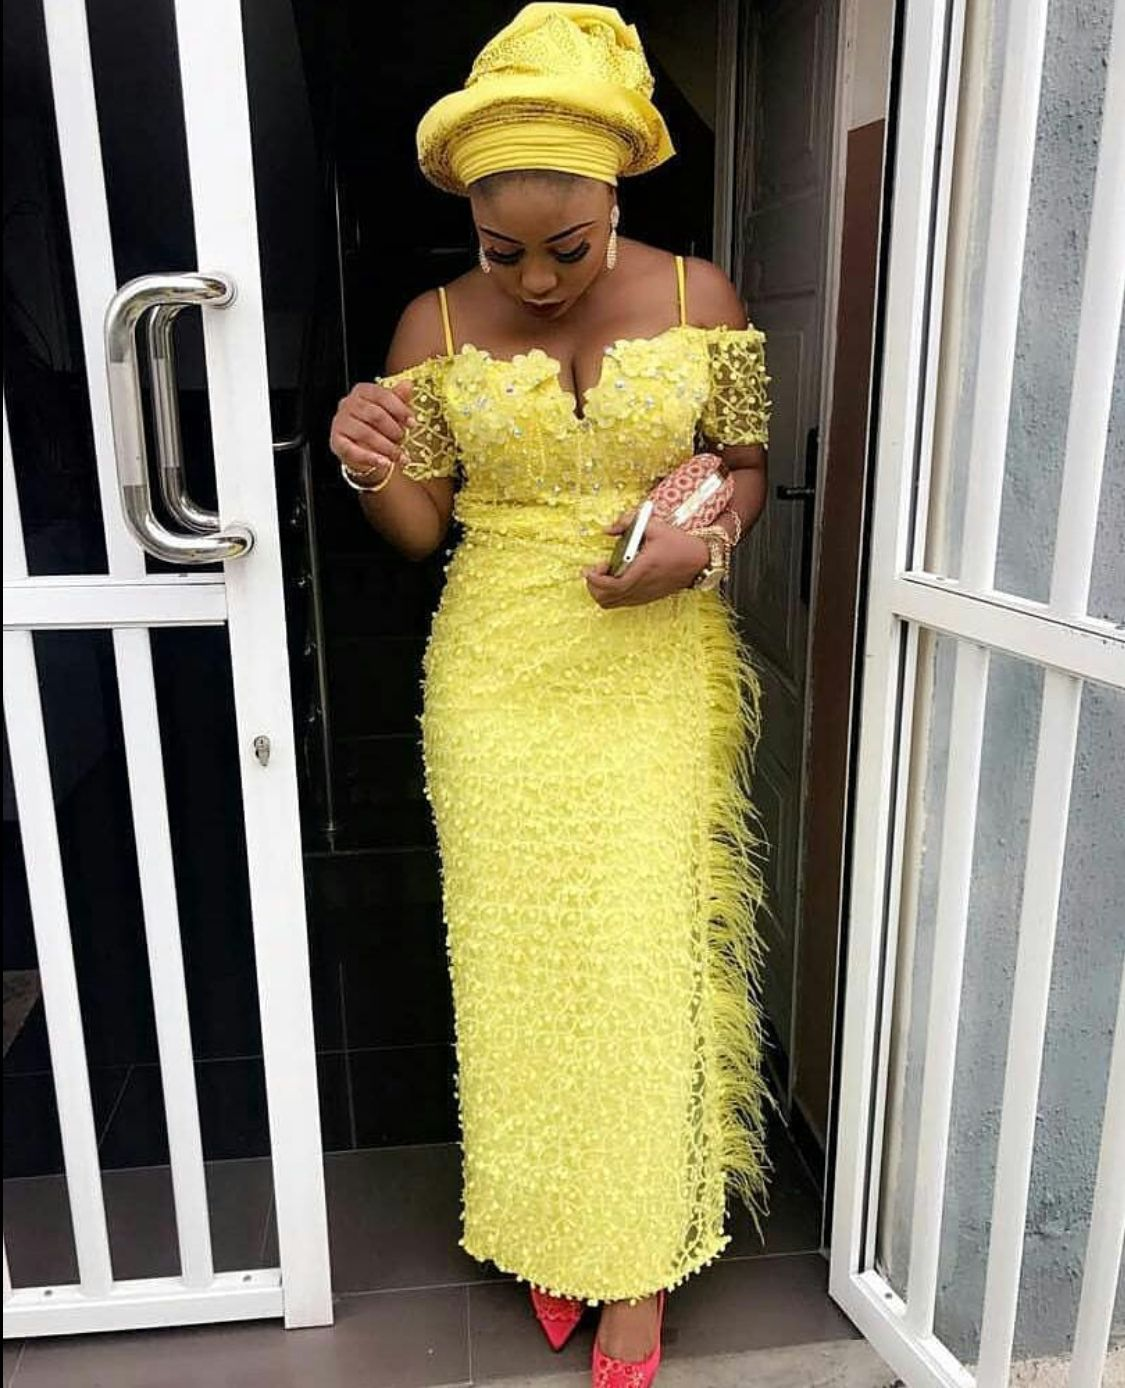 Party dress | African style | Pinterest | Africans, African fashion ...